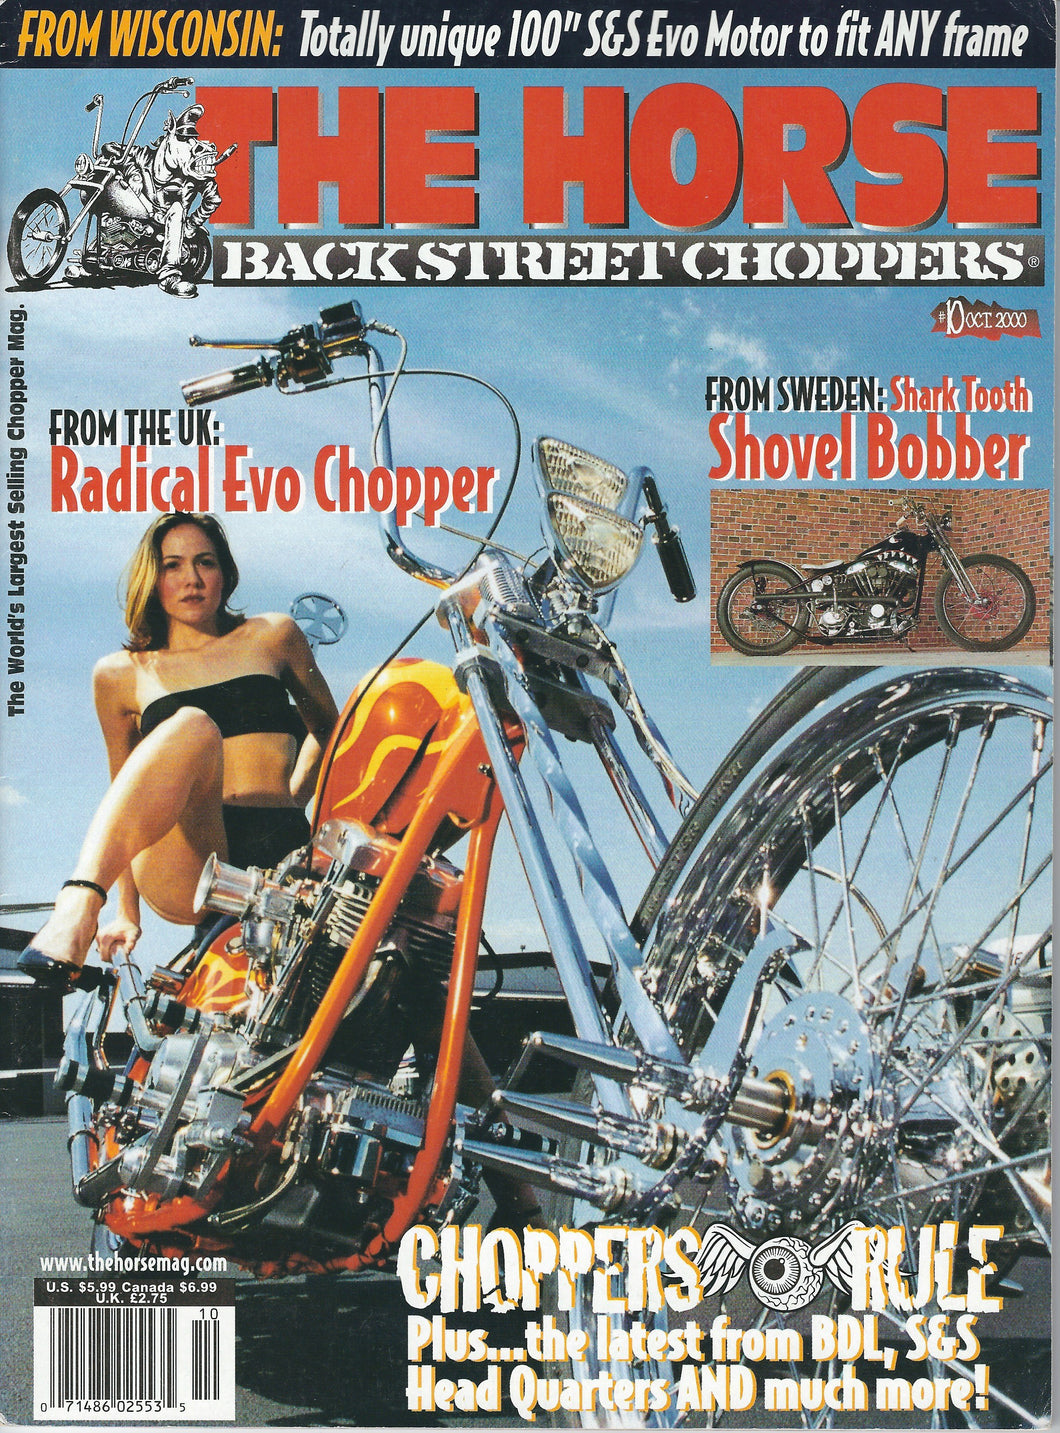 The Horse BackStreet Choppers Magazine Issue #10